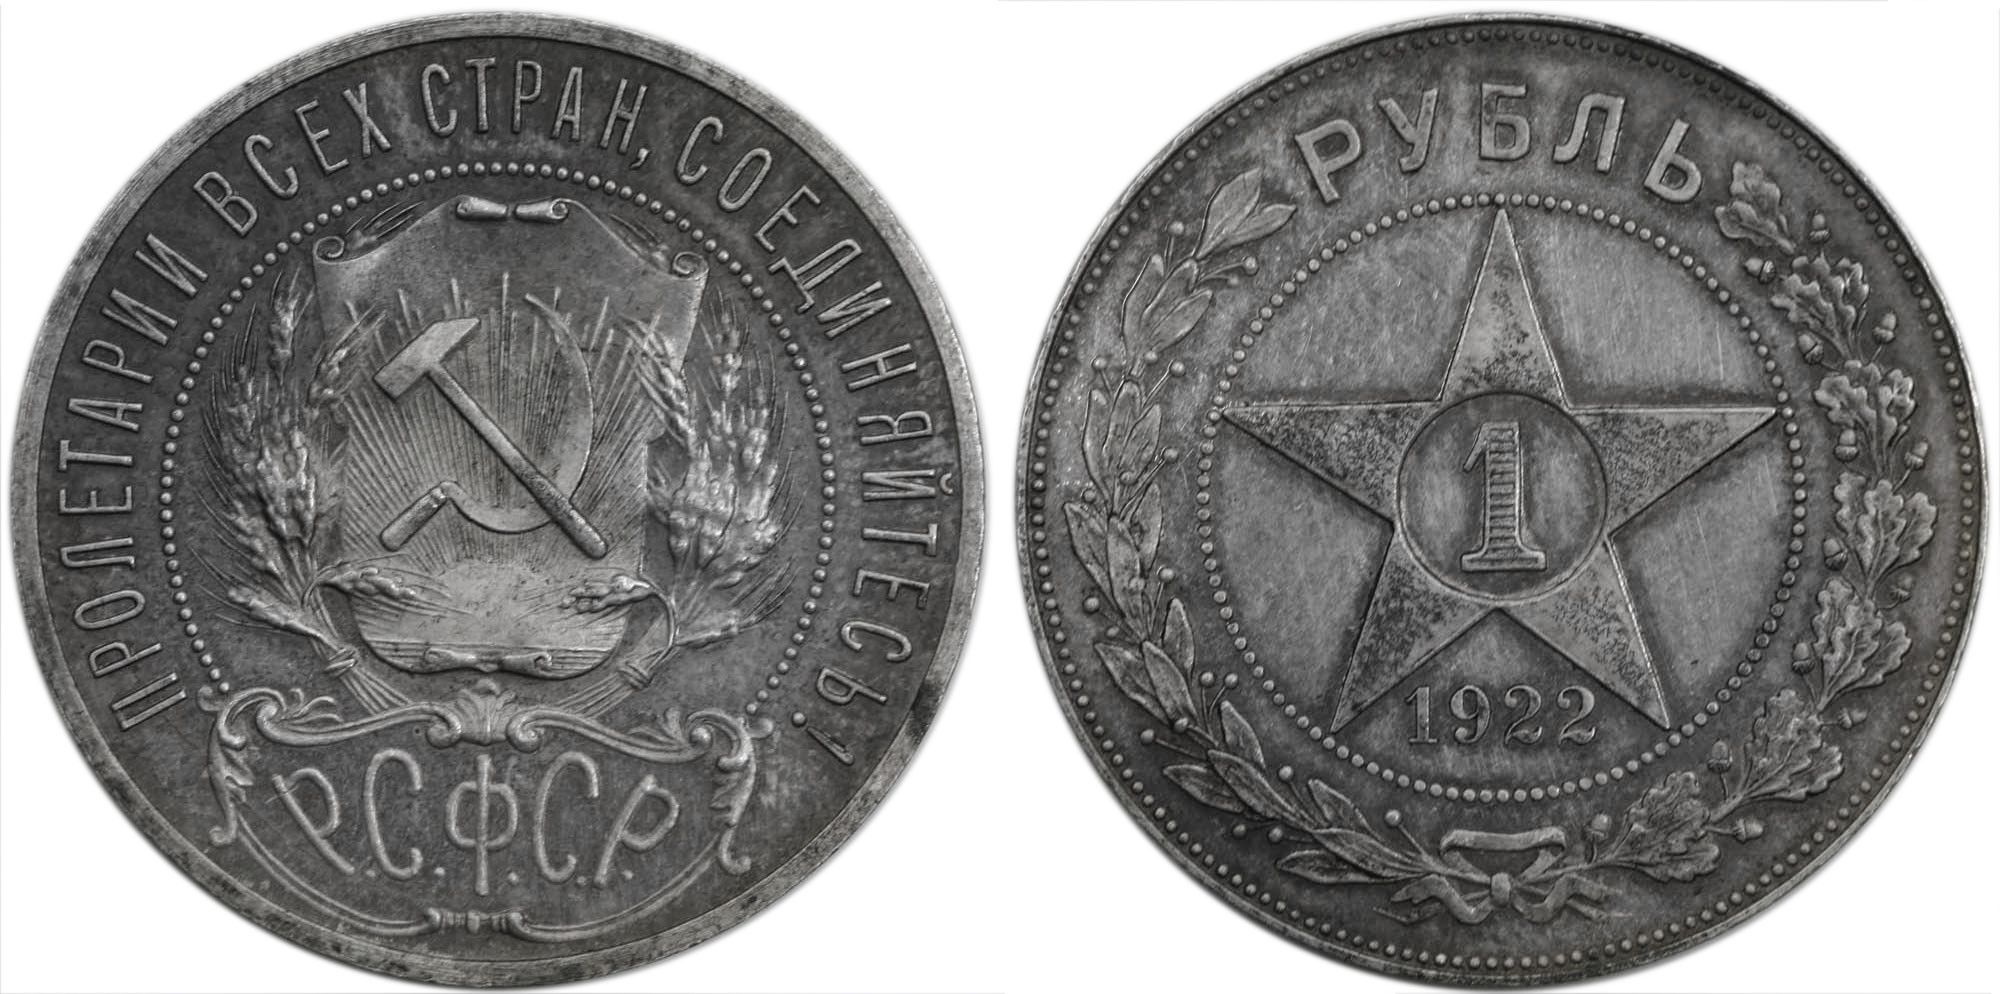 A Soviet 1 Rubel Silver Coin 1922 The Writing On The Obverse